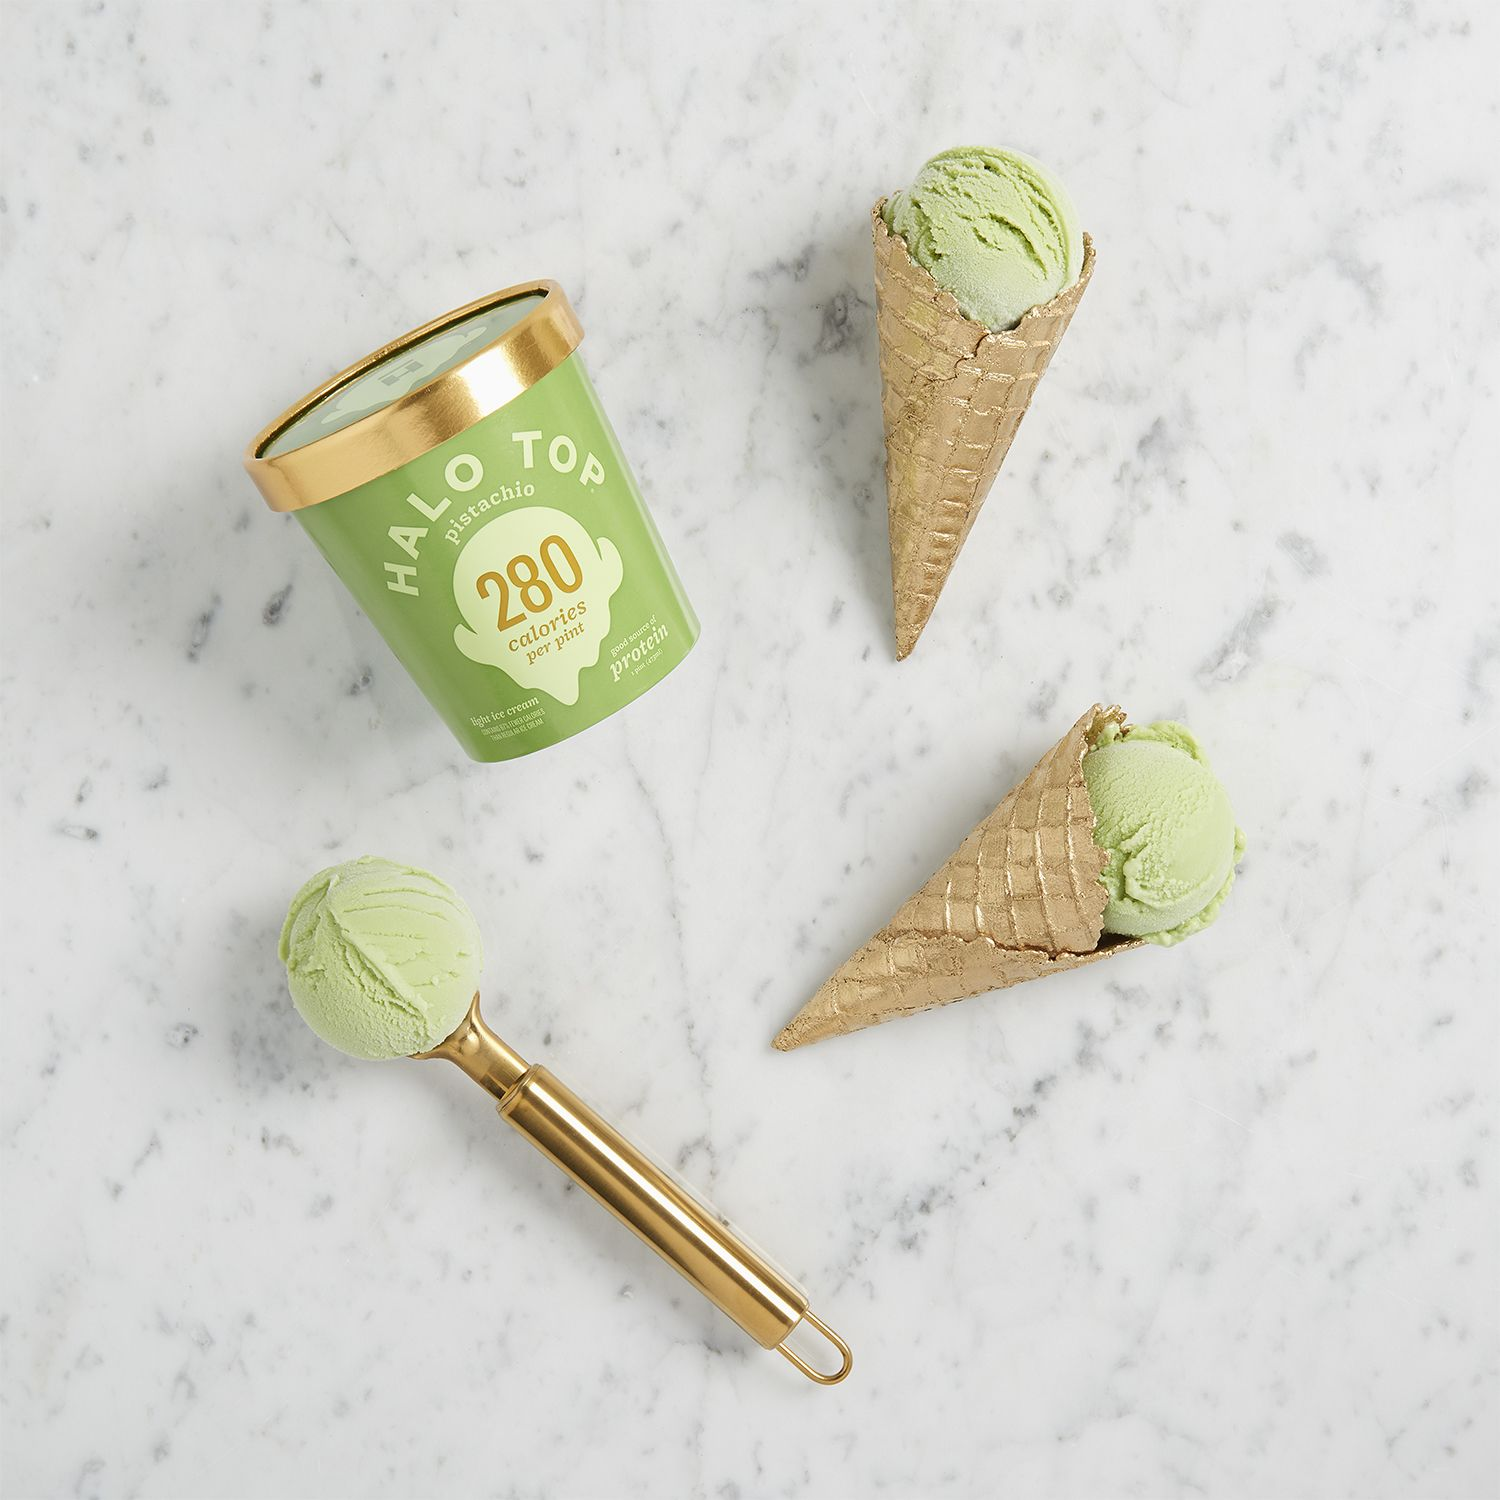 Could You Be Any More Green With Envy Halo Top Creamery Halo